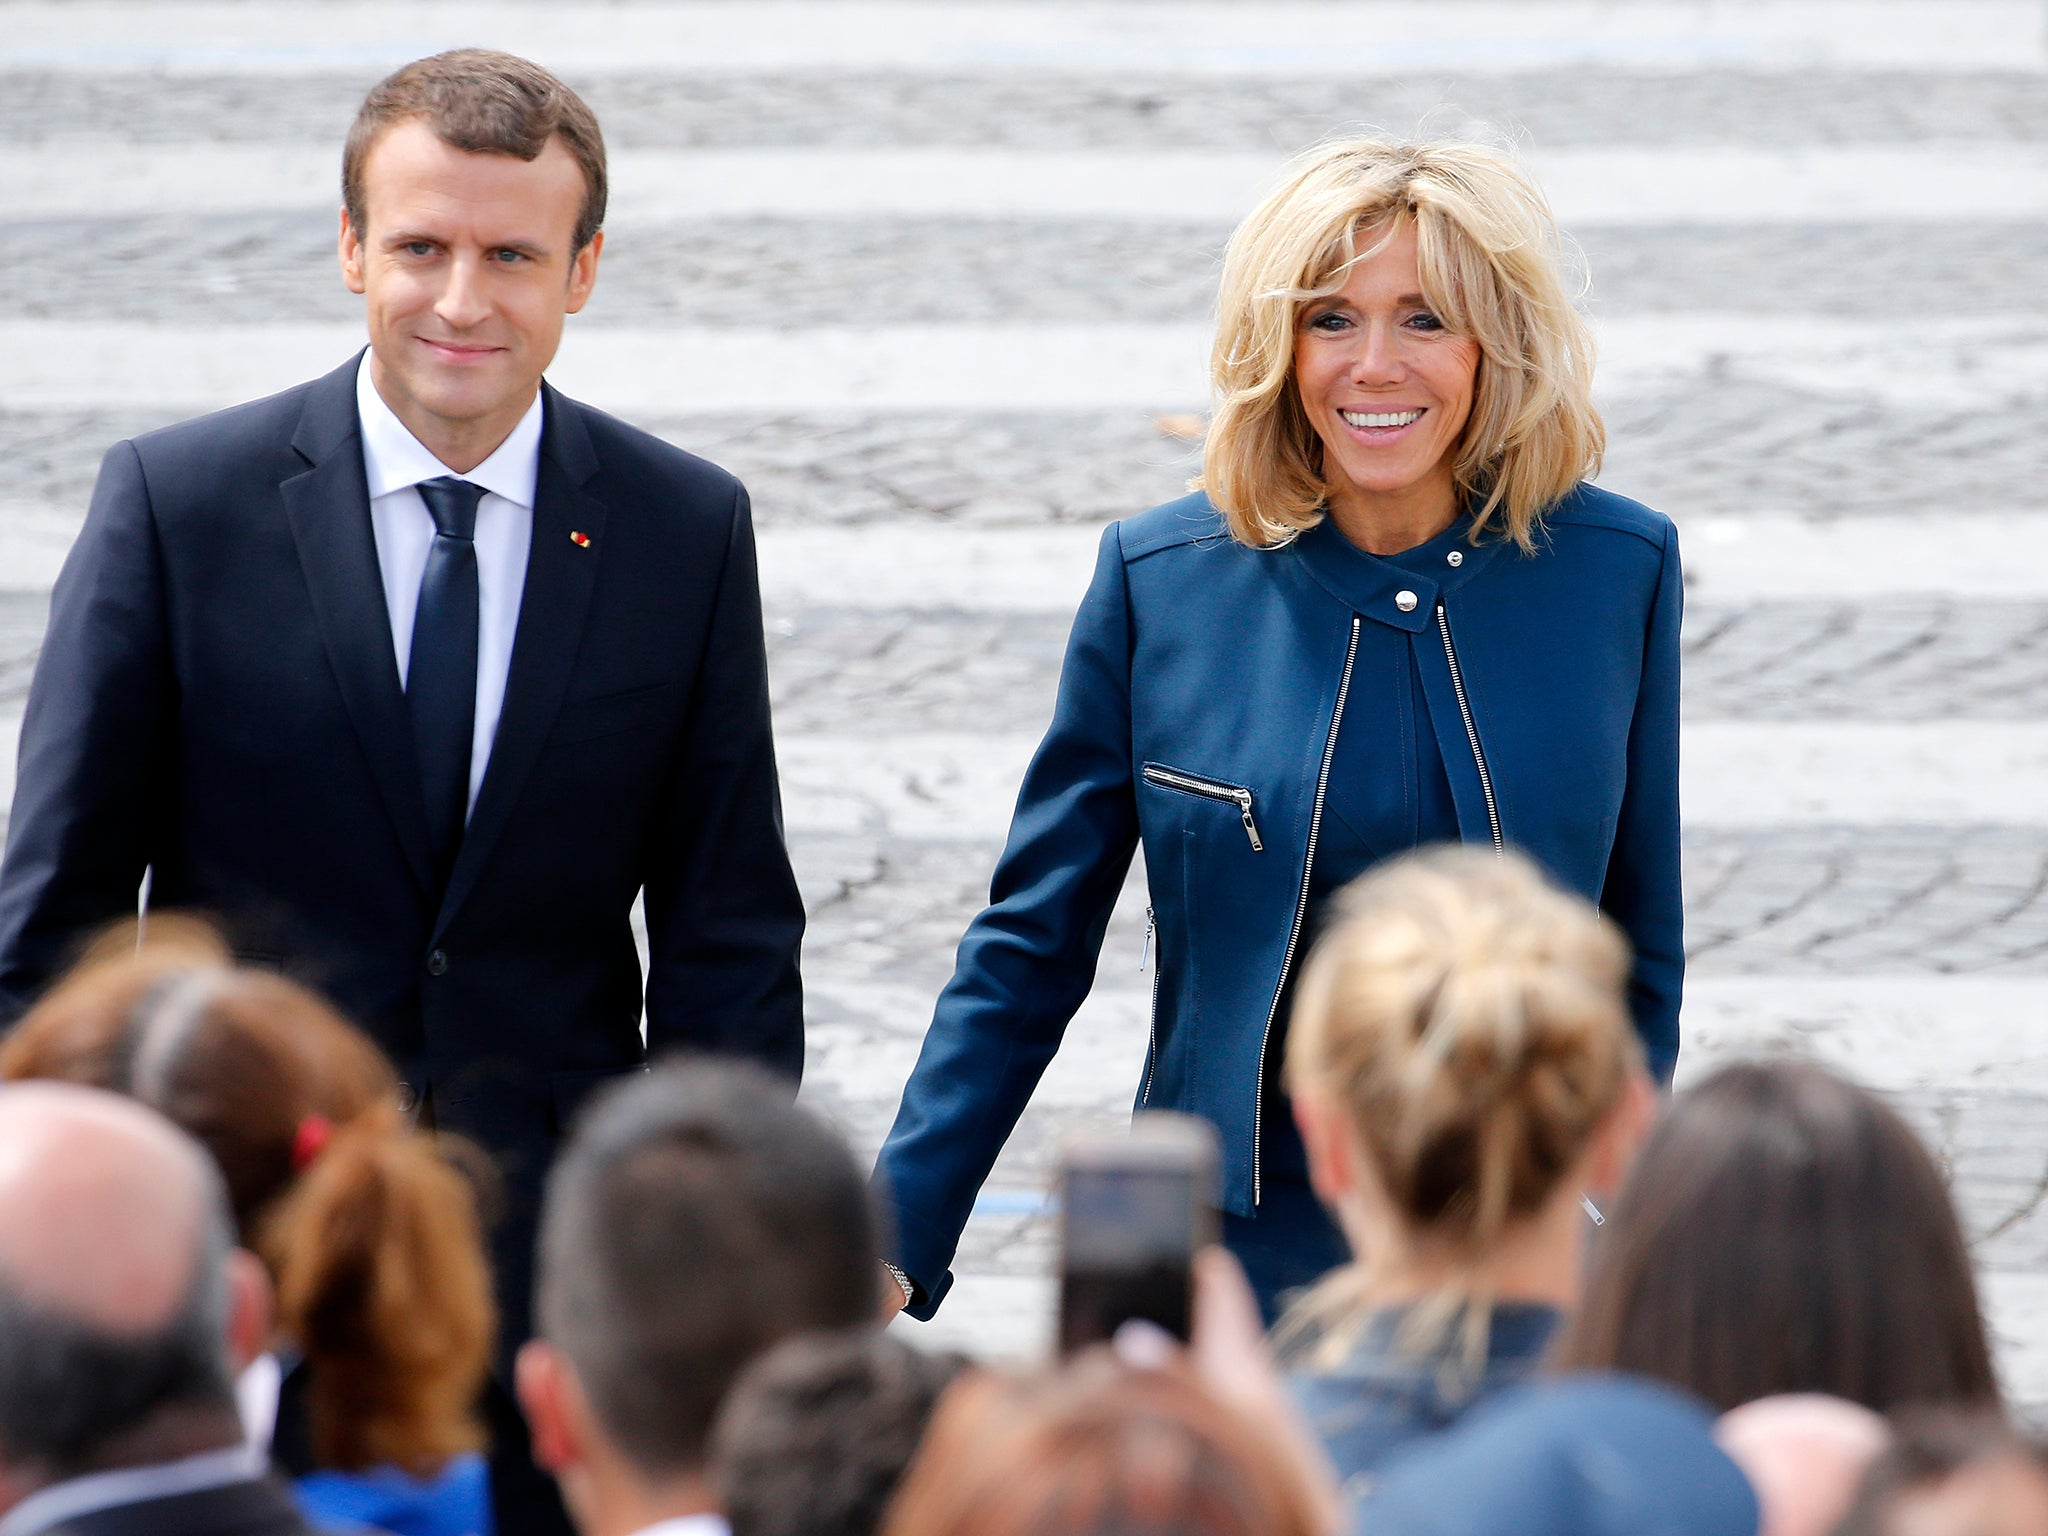 Brigitte Macron On Her Relationship With The French President Emmanuel S Only Fault Is To Be Younger Than Me The Independent The Independent